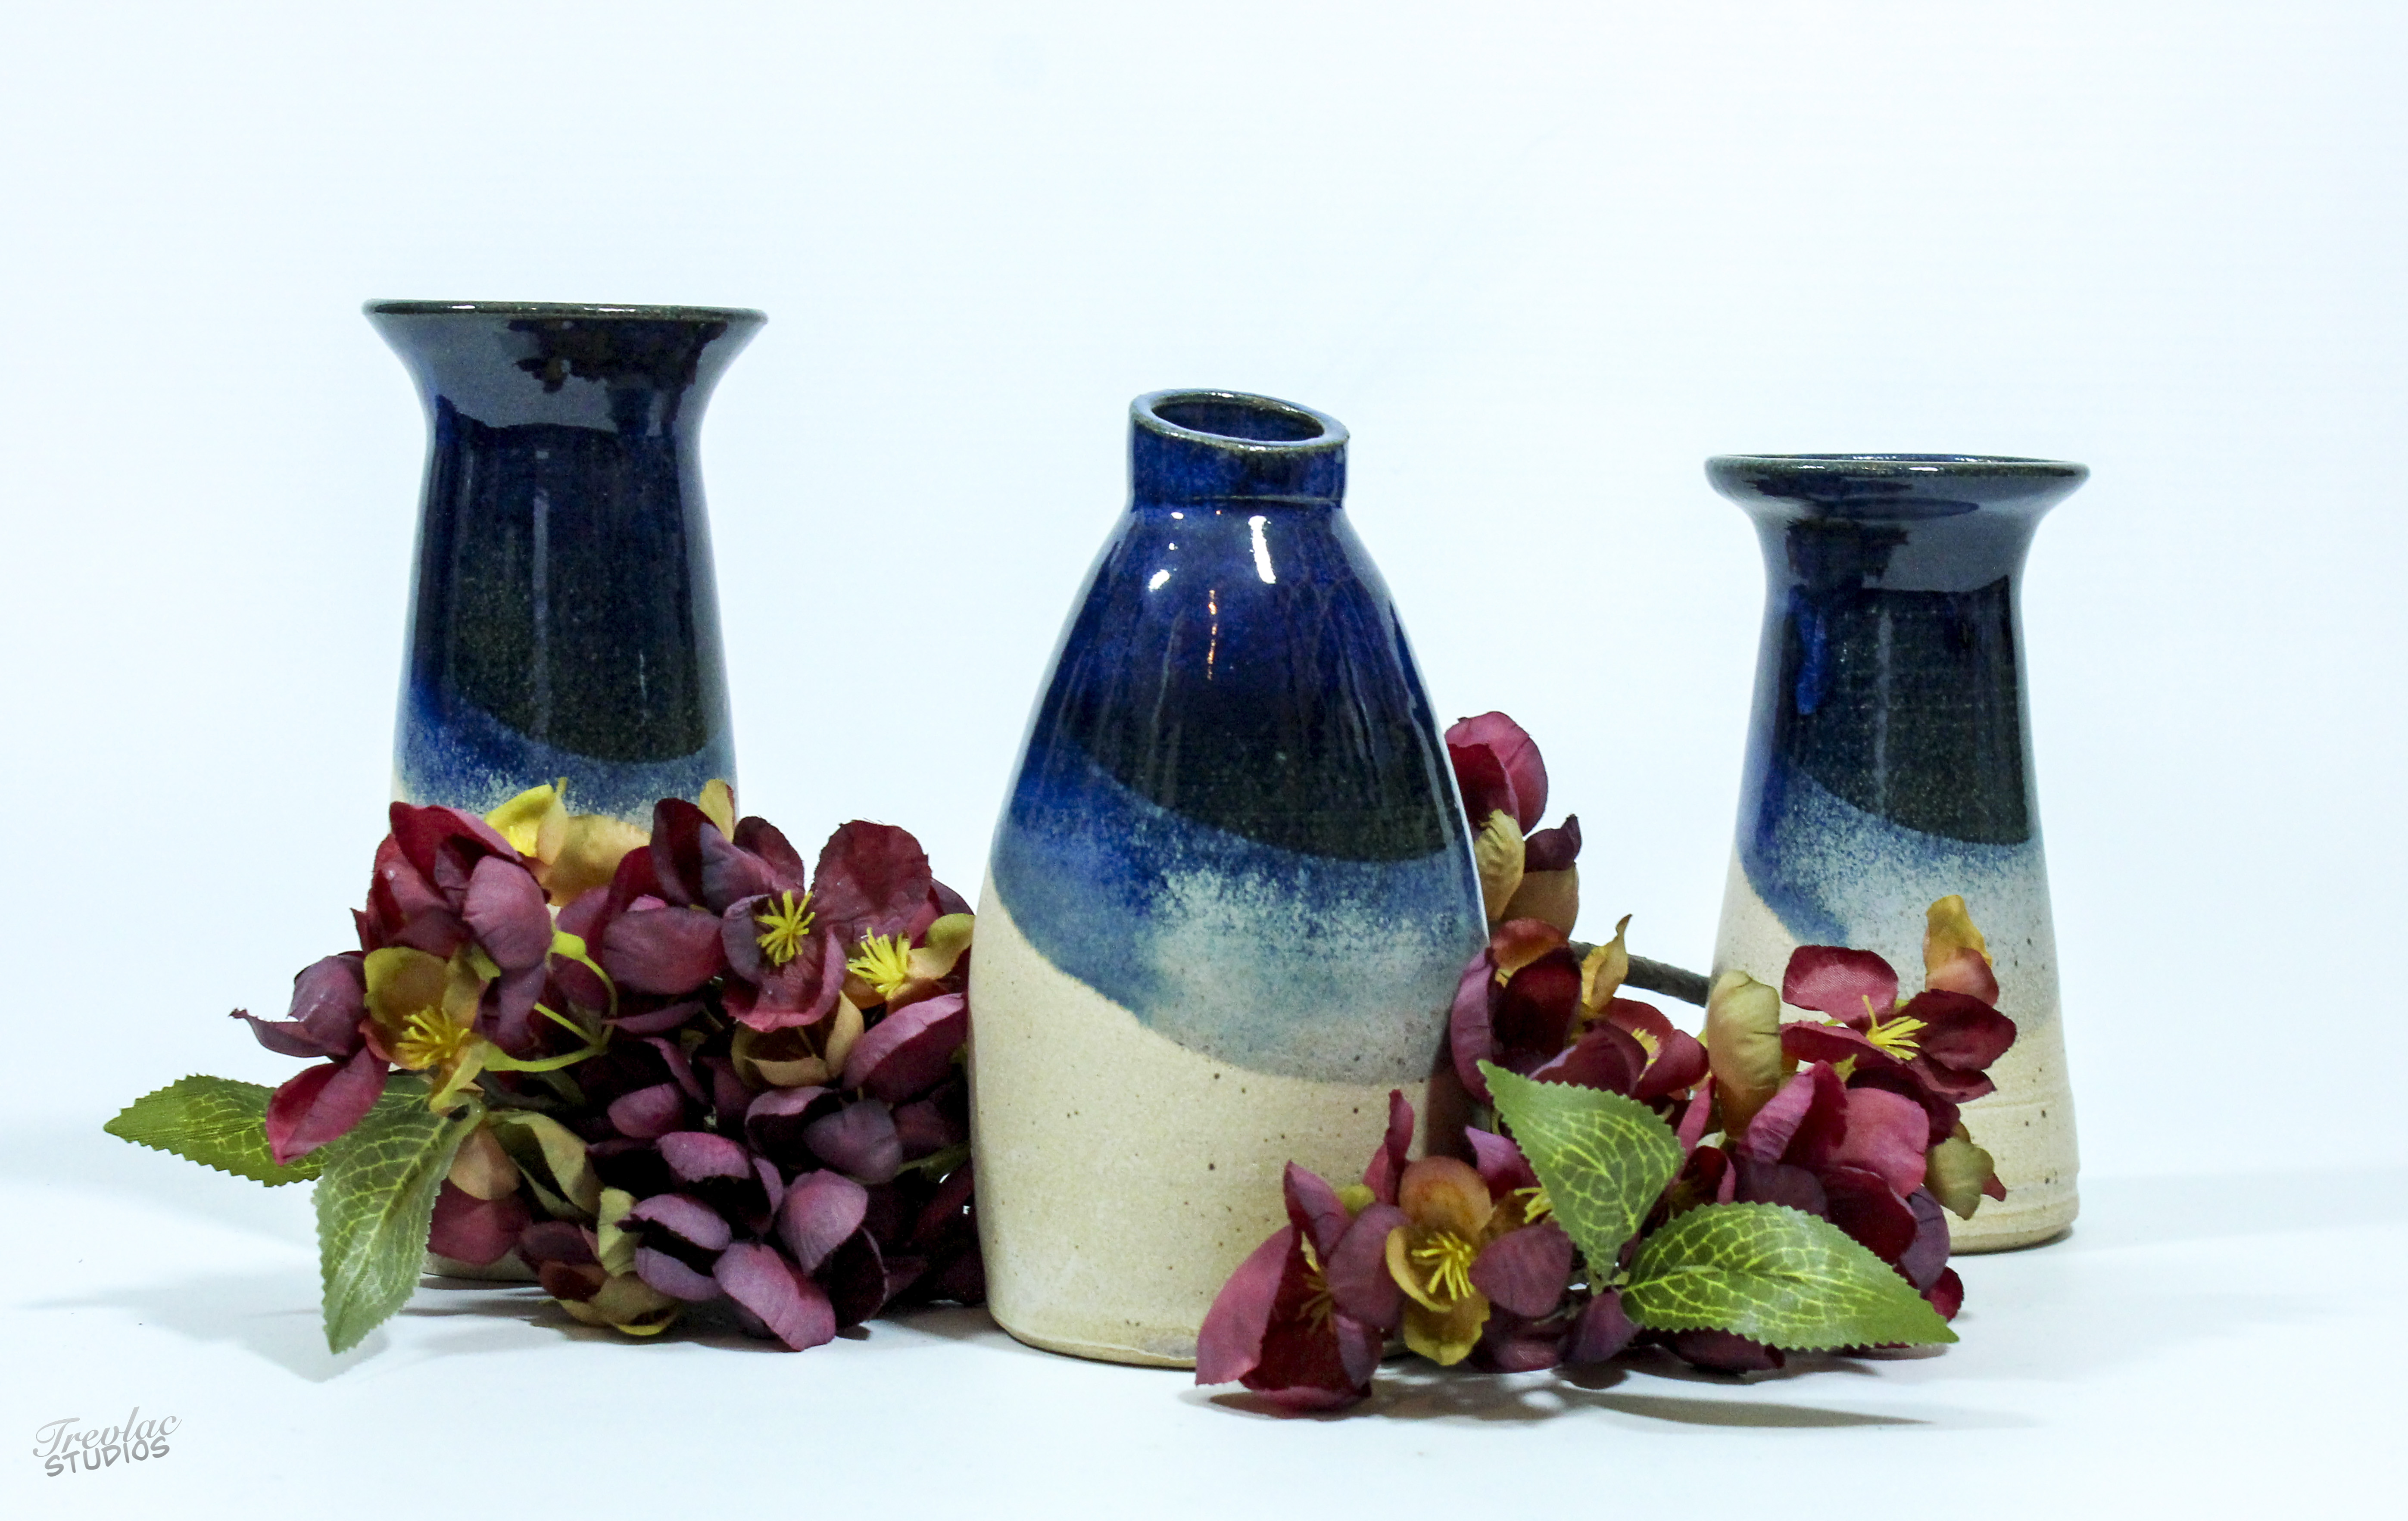 Peter White Blue Sea Sand Bud Vase Woburn Sands Clay The Great Pottery Throw Down